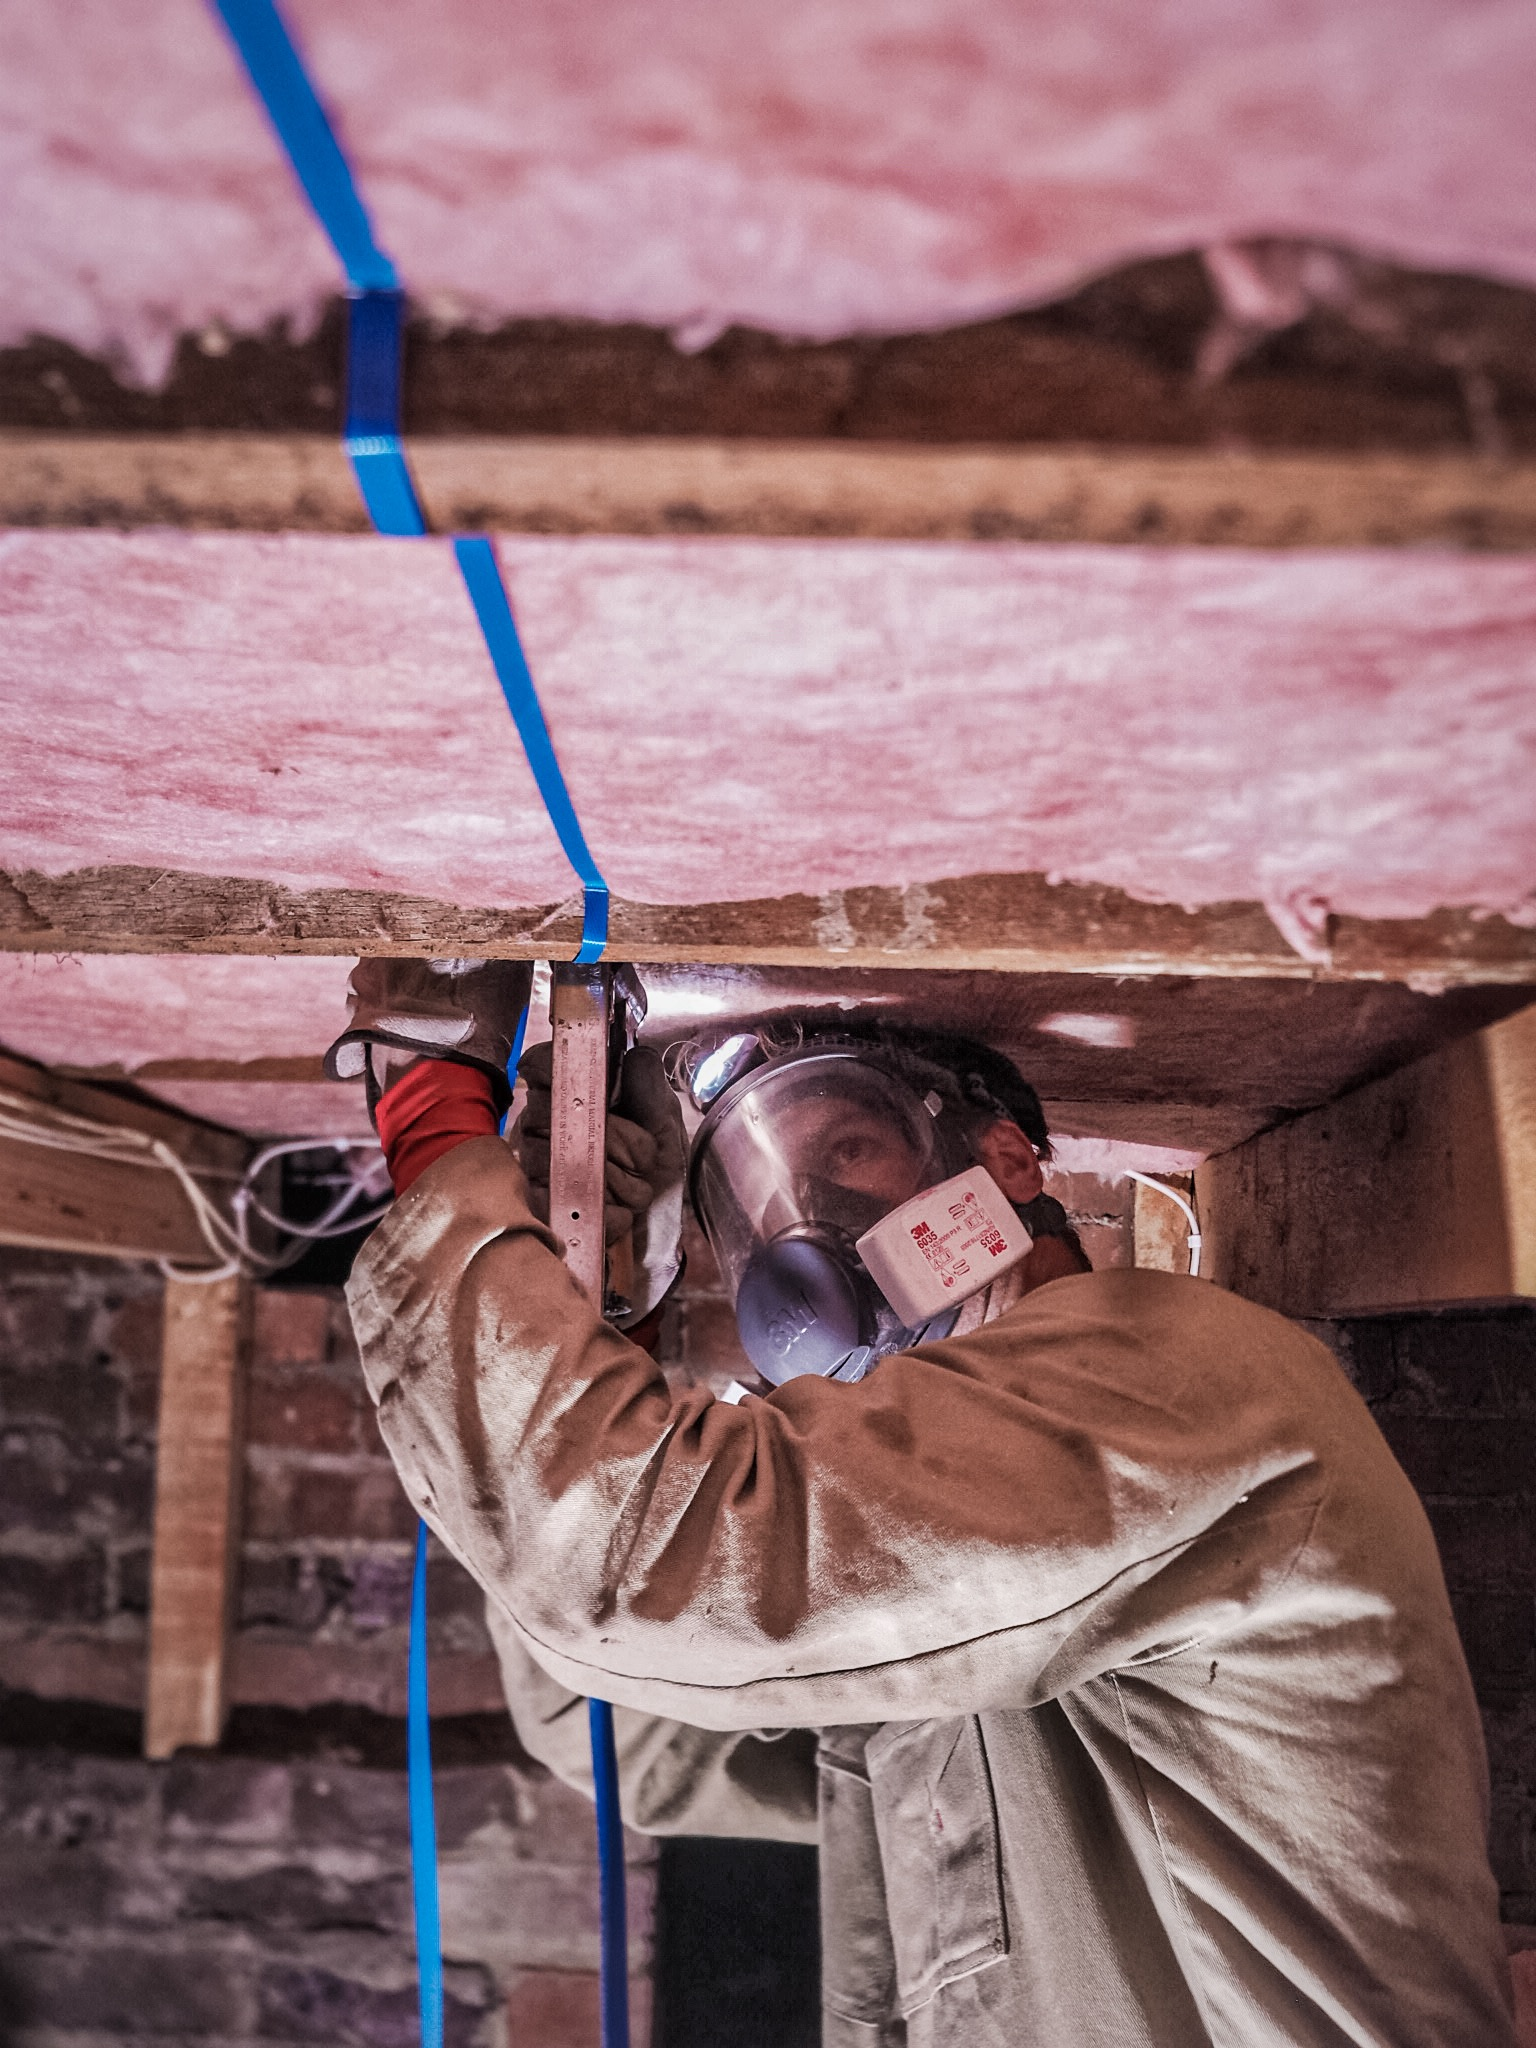 Installing hobart insulation safely